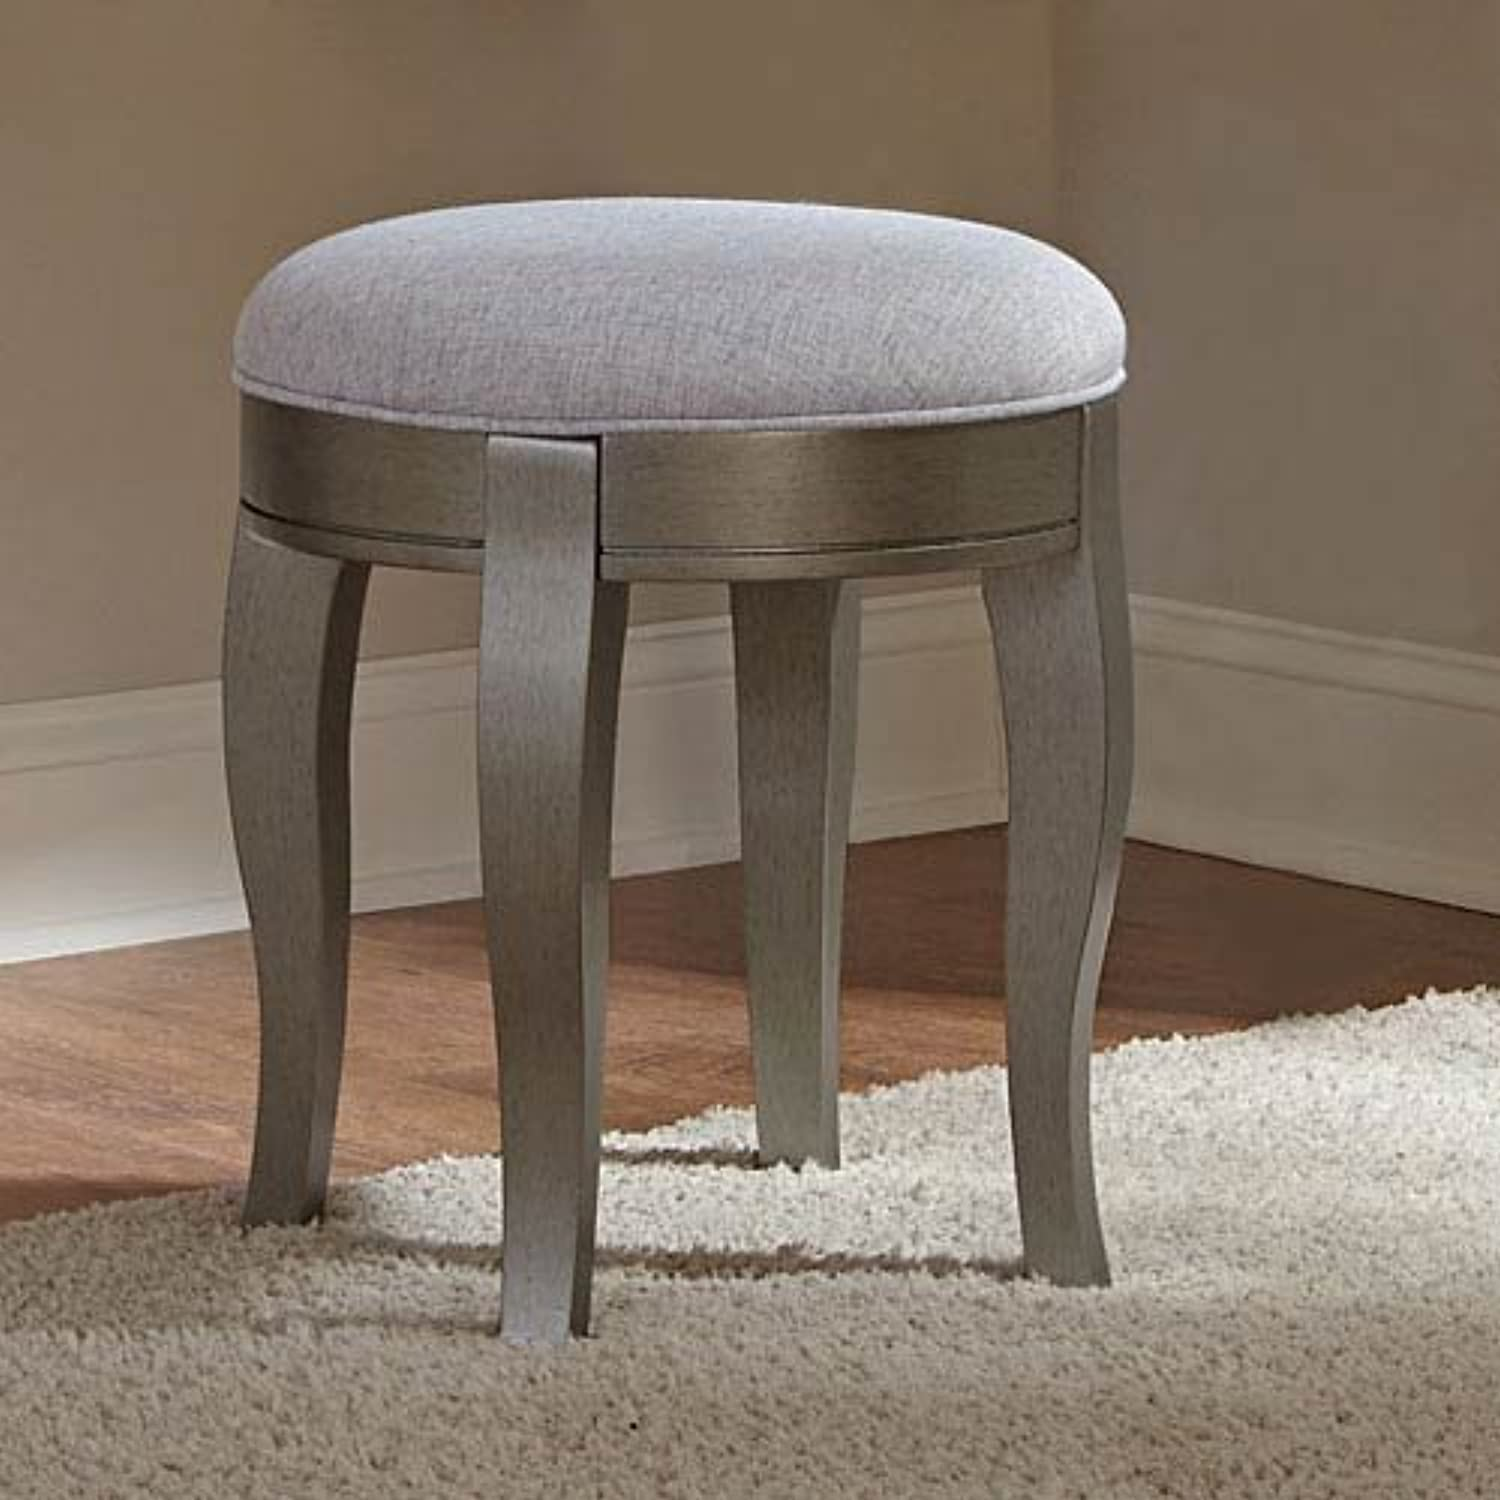 Hillsdale Kids and Teens Kensington NE Kids 30545 Vanity Stool, Antique Silver